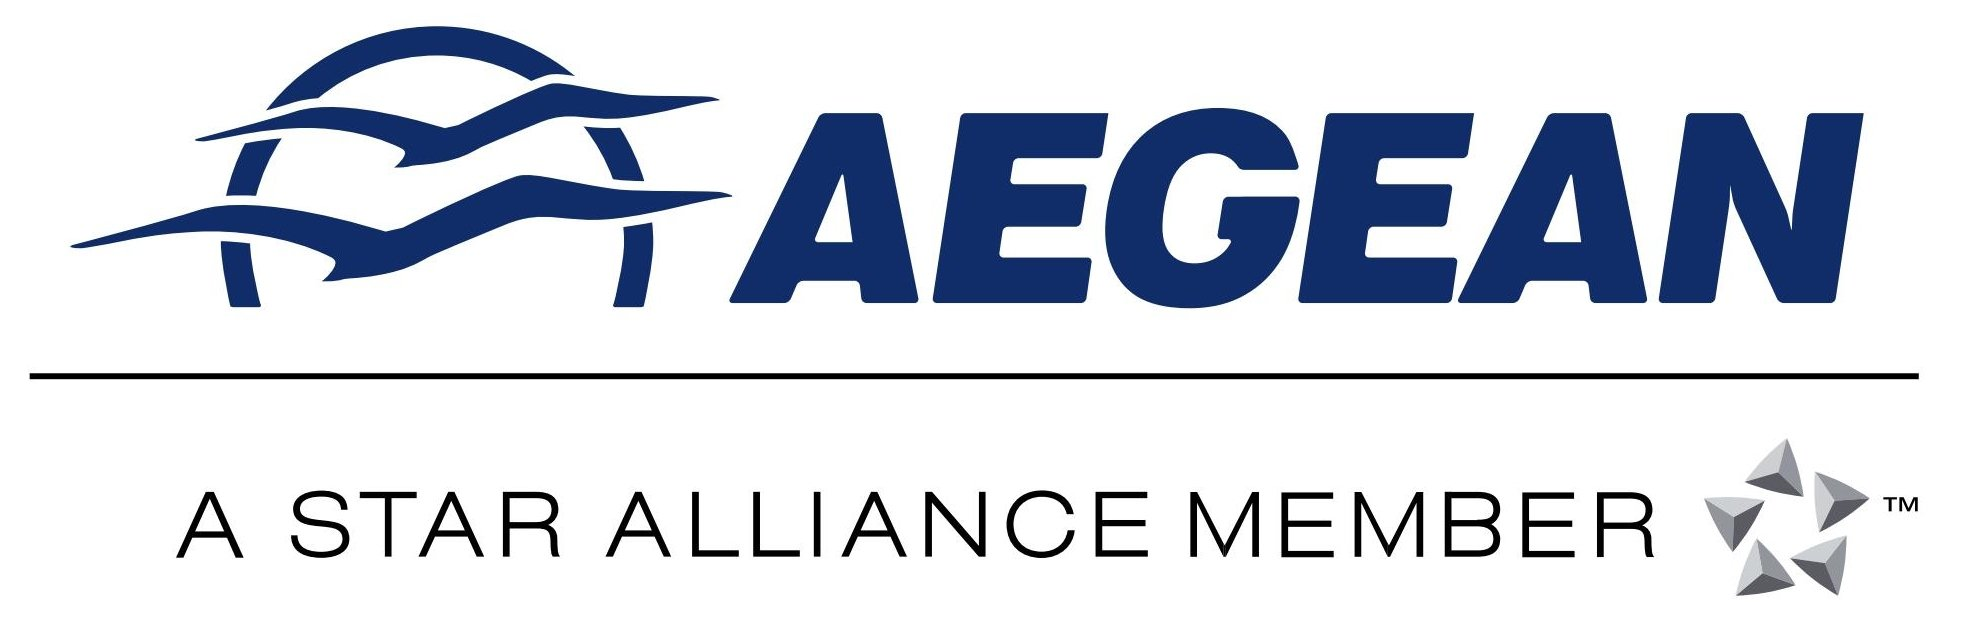 Aegean Airlines Logo Vector EPS Free Download, Logo, Icons, Brand Emblems